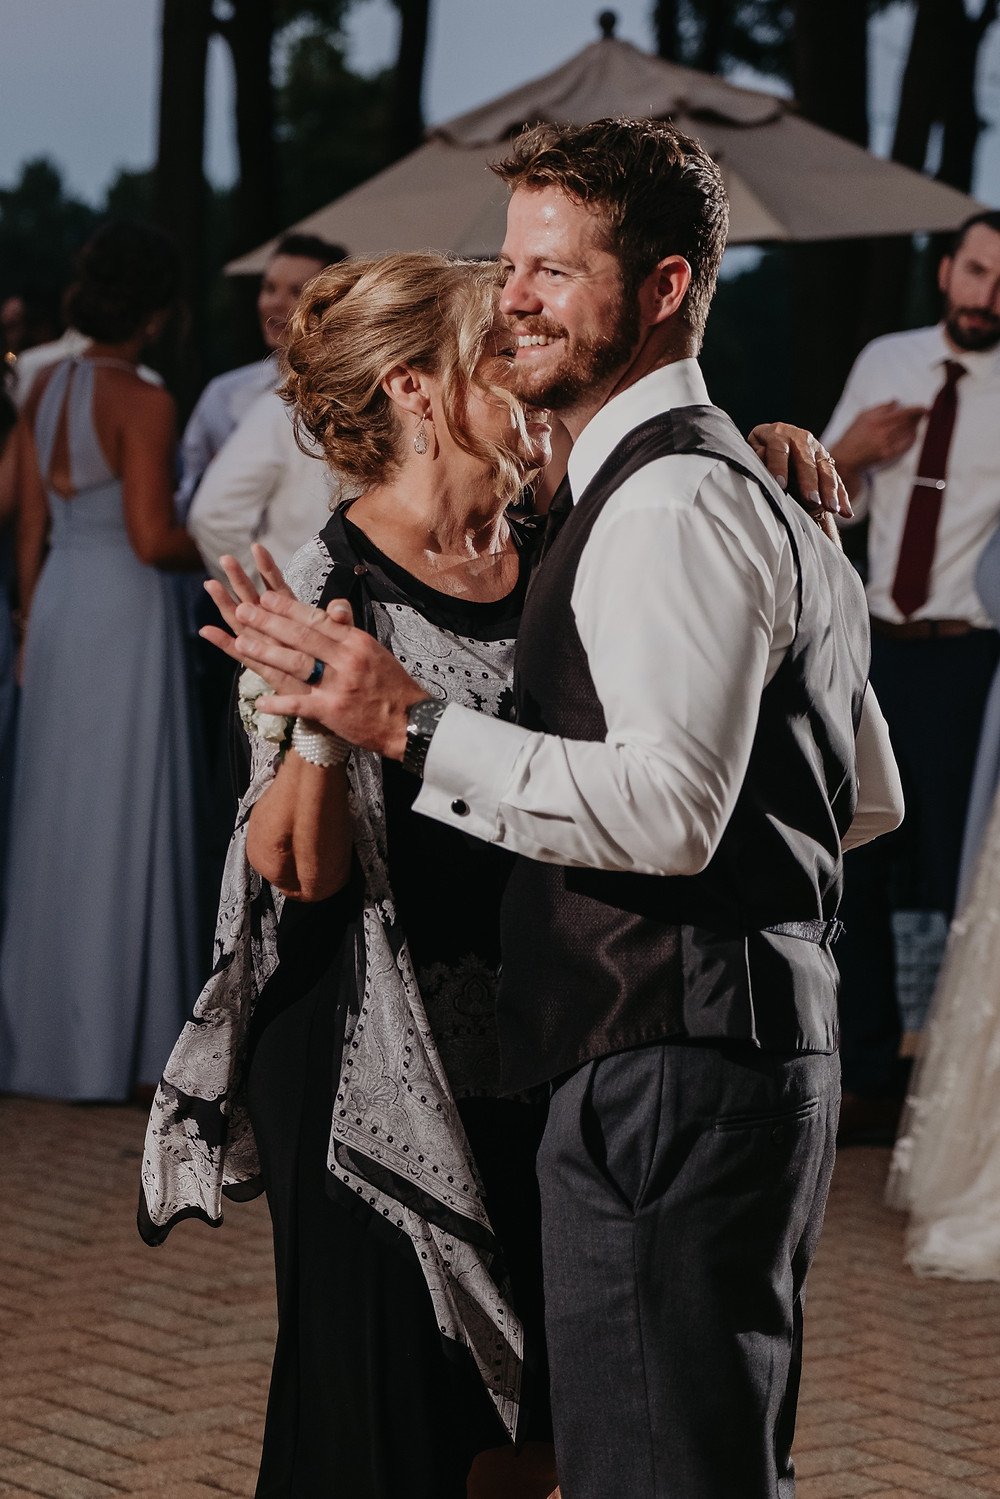 Mother of the groom dancing at wedding reception with groom. Photographed by Nicole Leanne Photography.